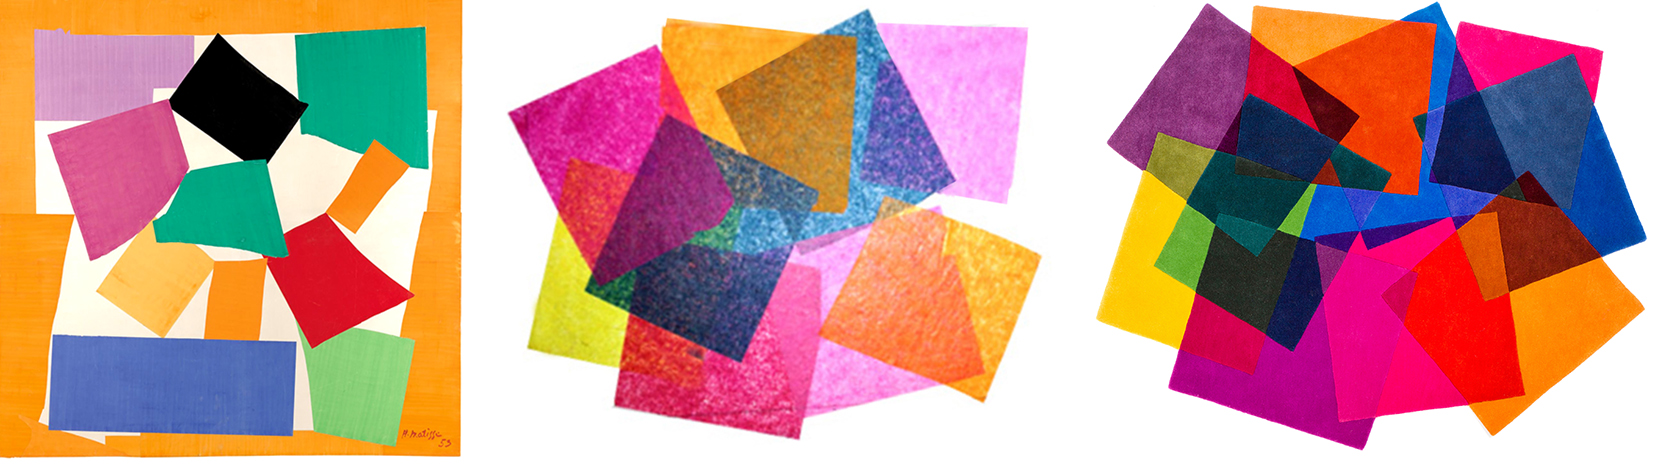 Art Inspired Rugs - After Matisse